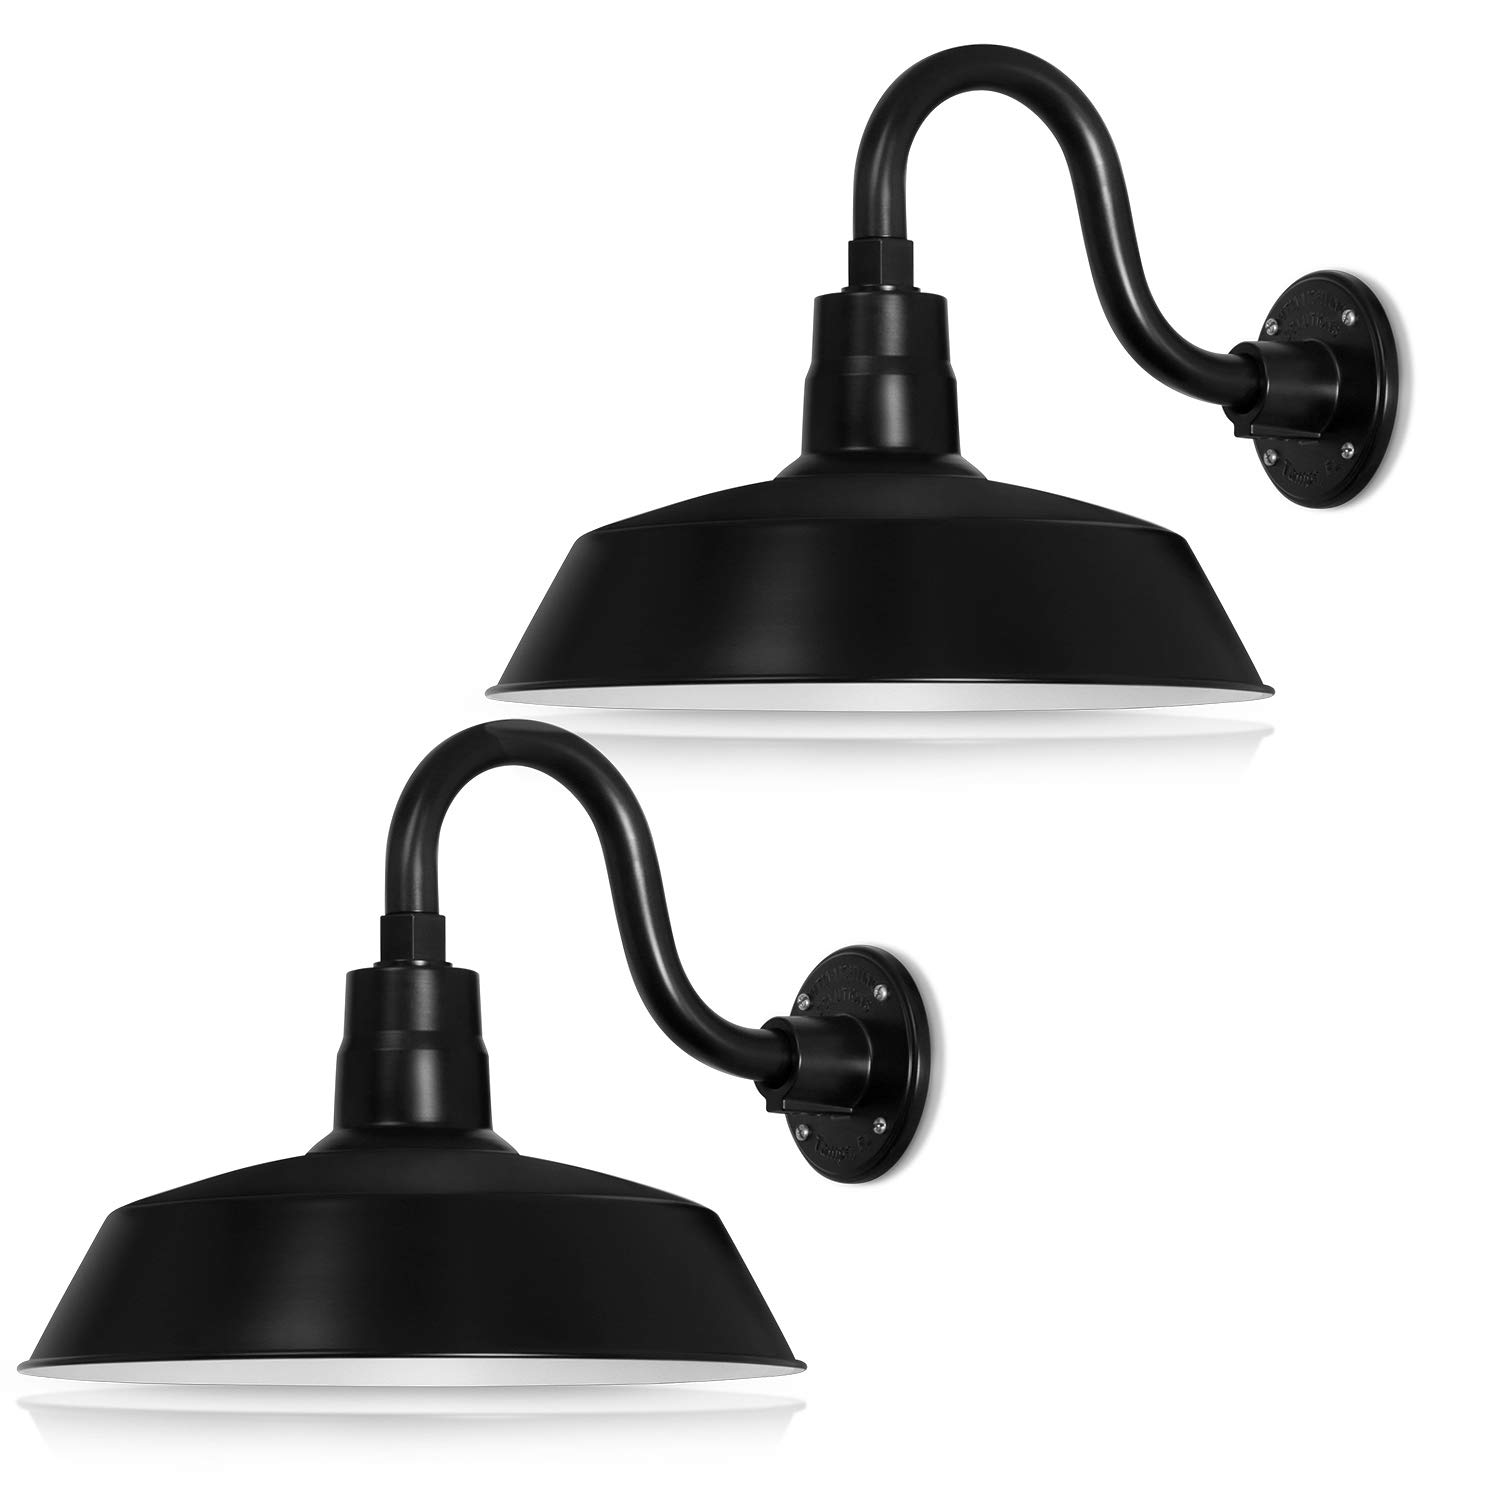 14in. Satin Black Outdoor Gooseneck Barn Light Fixture With 10in. Long Extension Arm - Wall Sconce Farmhouse, Antique Style - UL Listed - 9W 900lm A19 LED Bulb (5000K Cool White) - 2-Pack